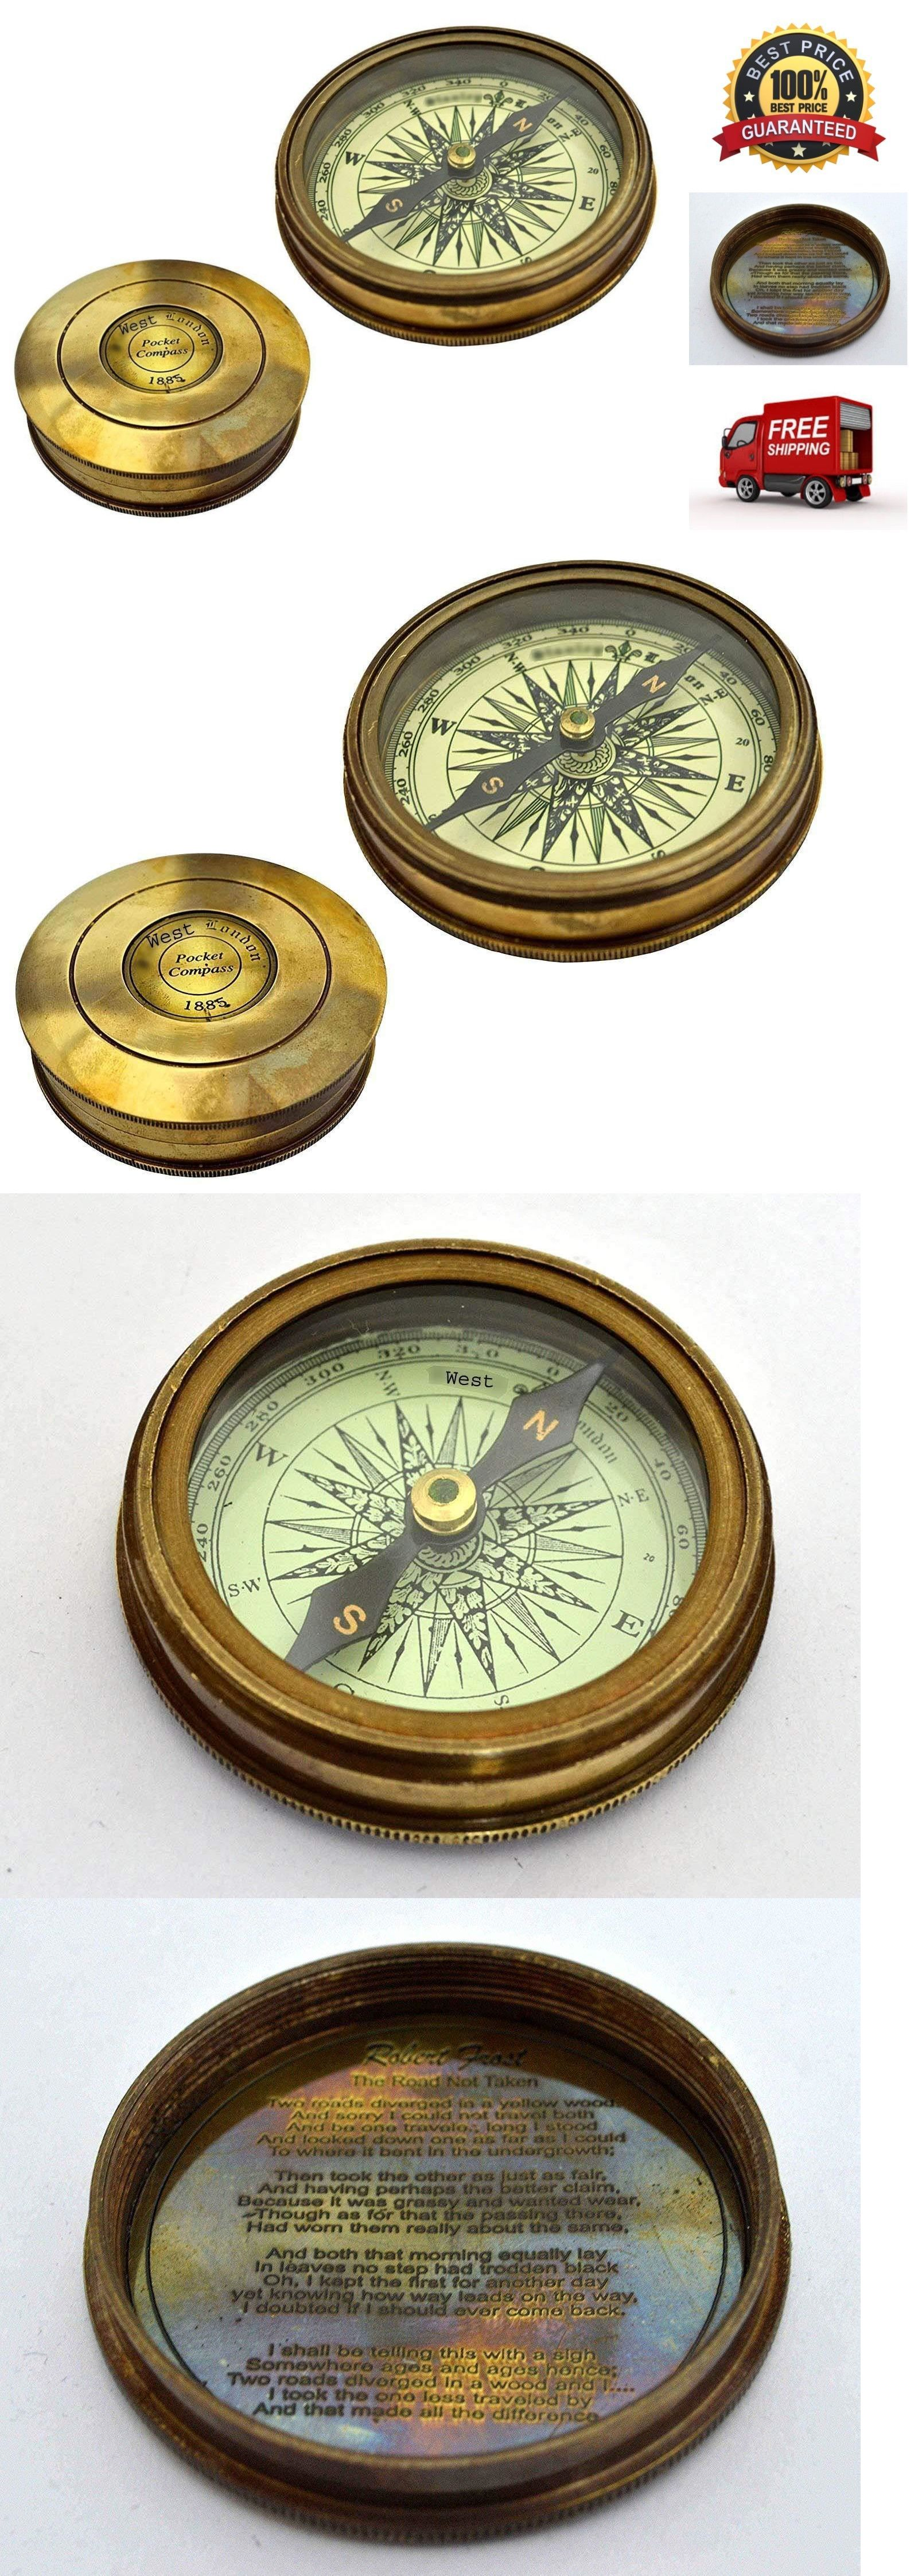 Maritime Maritime Compasses Antique Compass Brass Nautical Poem Compass Marine Compass Vintage Compas Unique